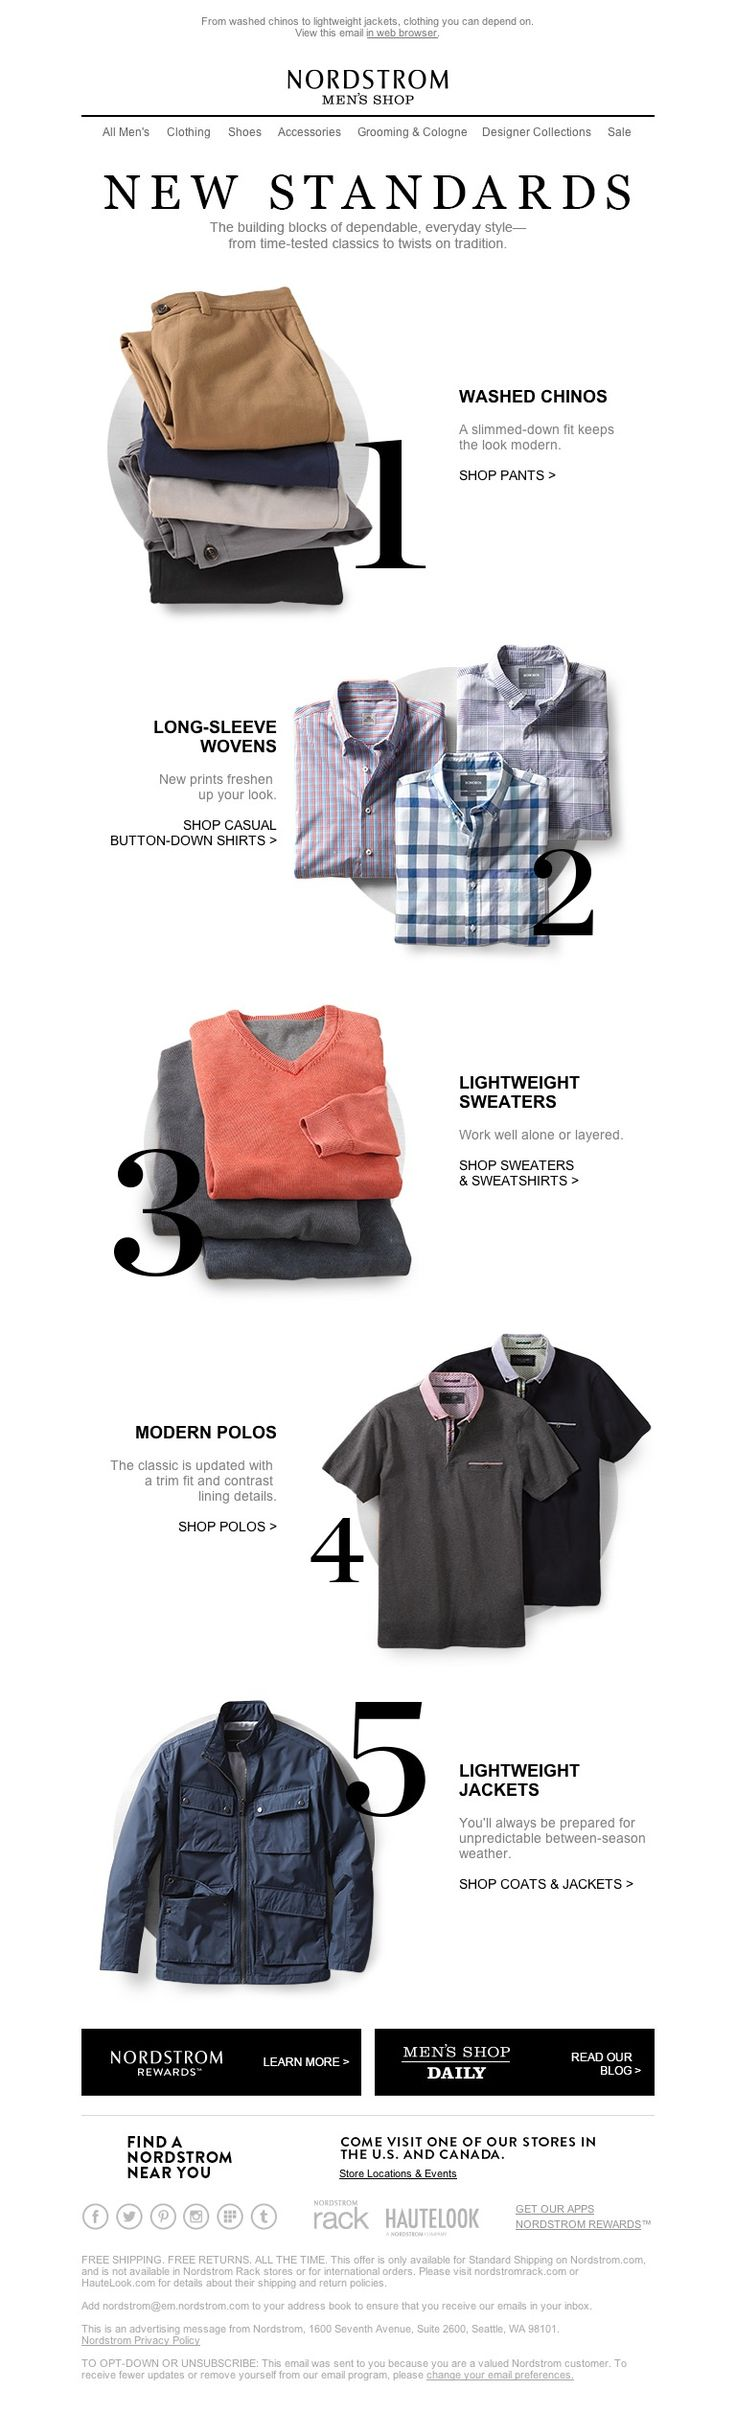 Nordstrom - The New Standards: 5 Items for Everyday Style - newsletter - email - marketing